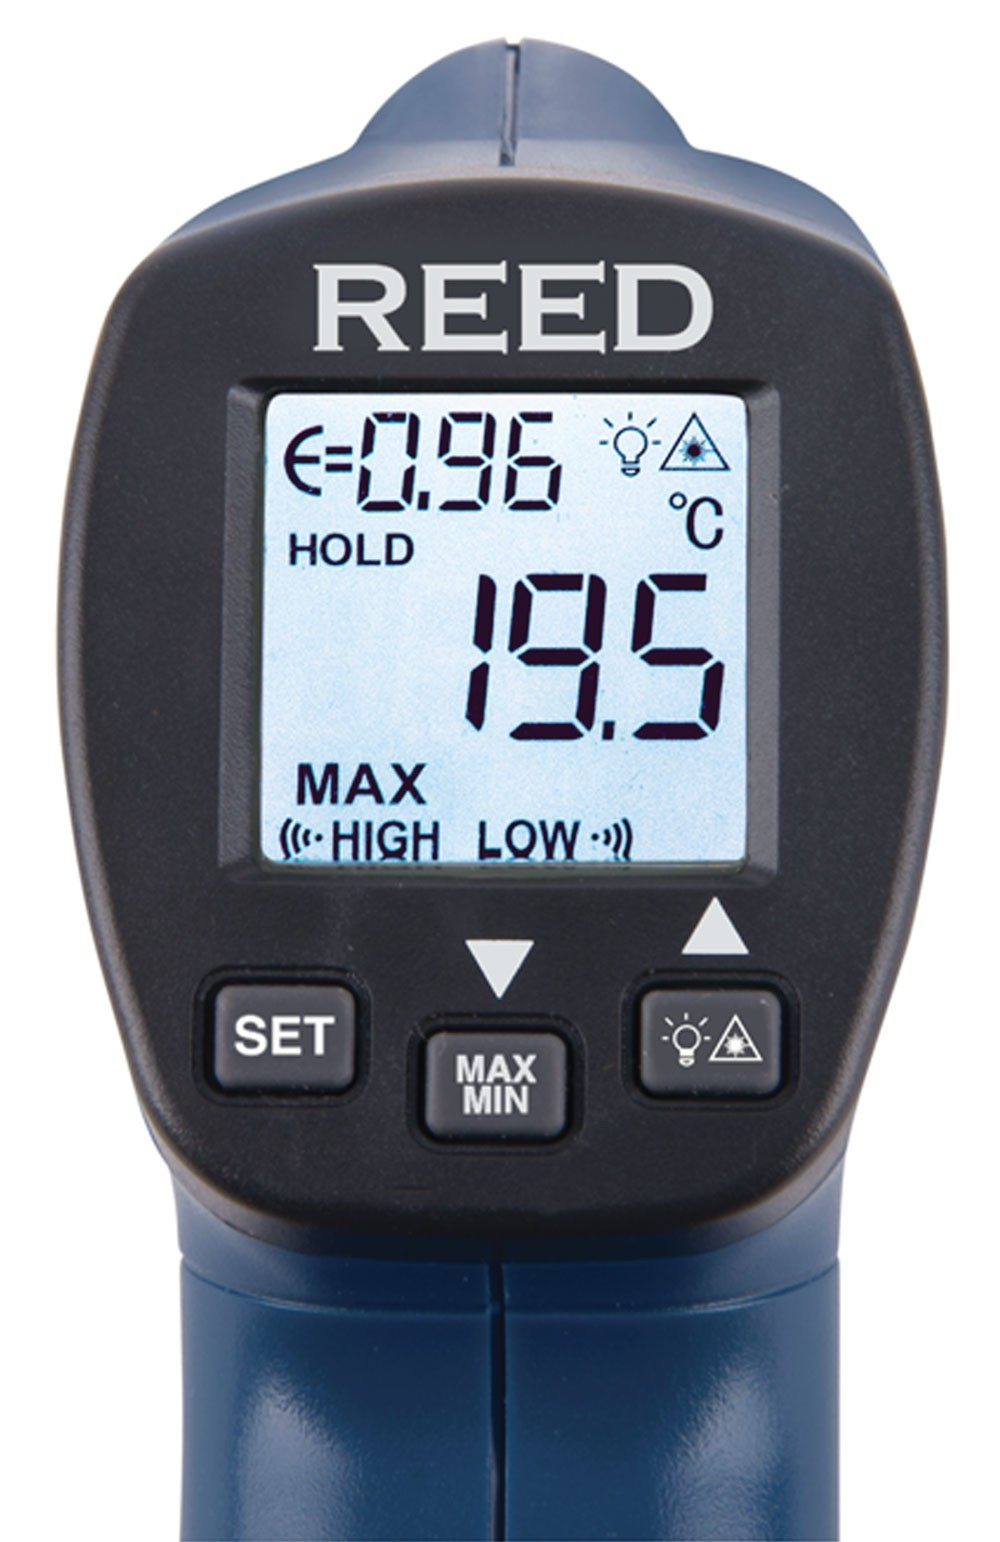 REED R2300 Infrared Thermometer, 12:1, 752°F (400°C)-REED R2300 5